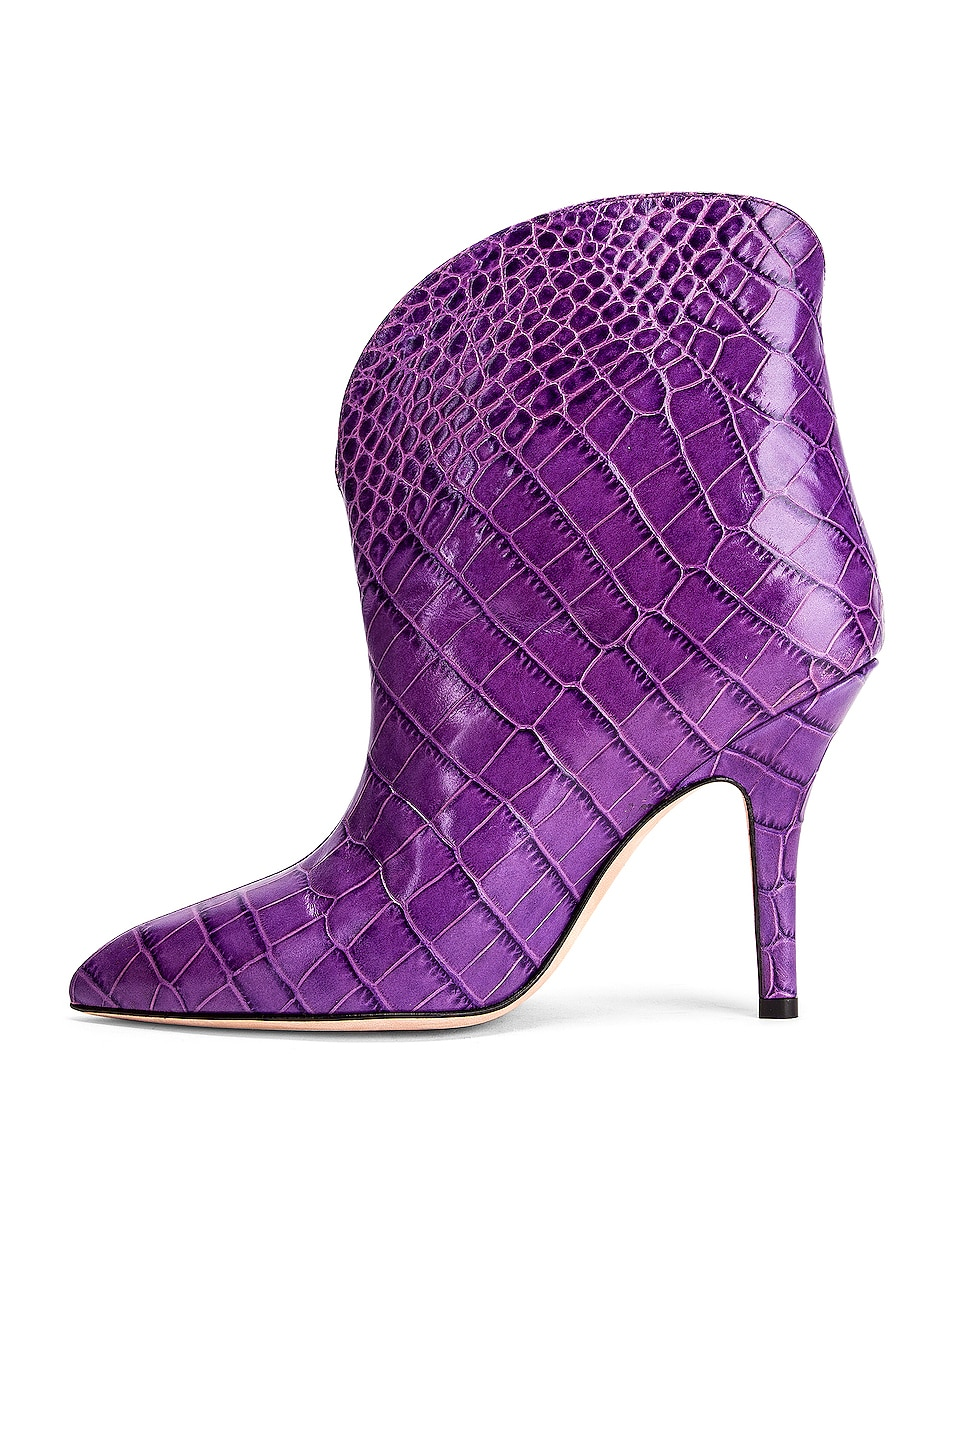 Image 5 of Paris Texas Moc Croco Rounded Stiletto Ankle Boot in Violet